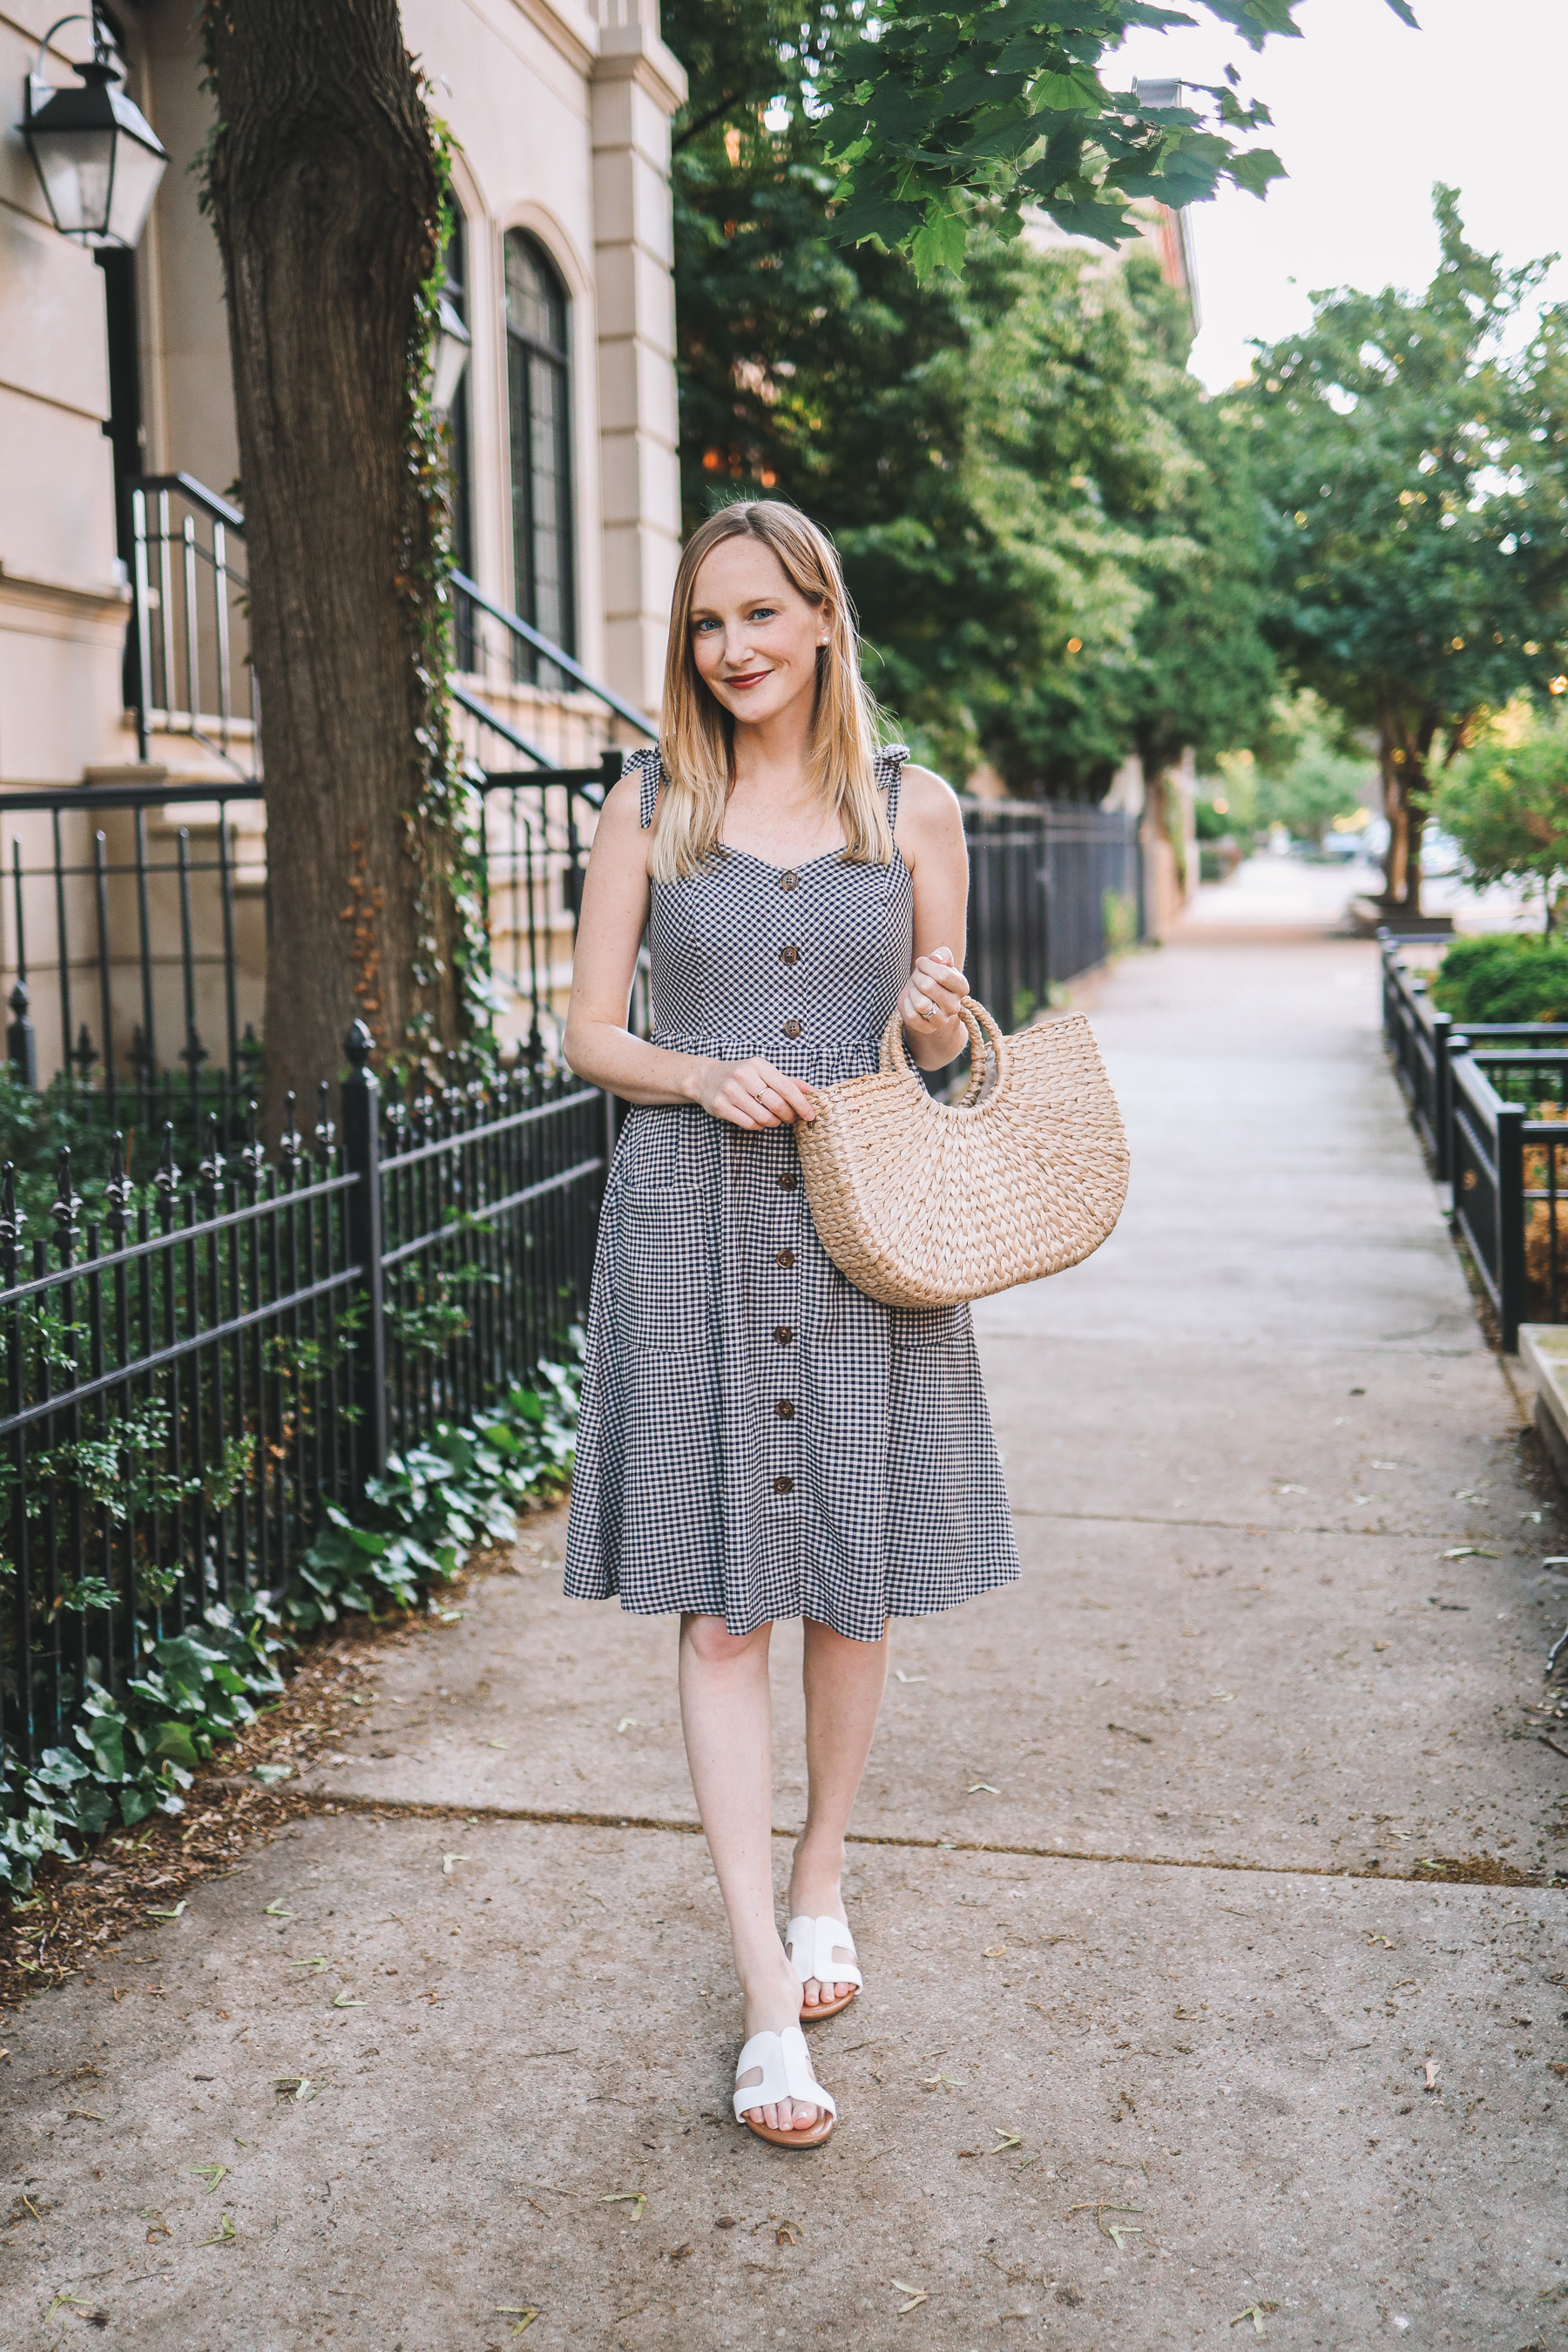 Easy Summertime Looks by Kelly Larkin | Kelly in the City & Kohl's